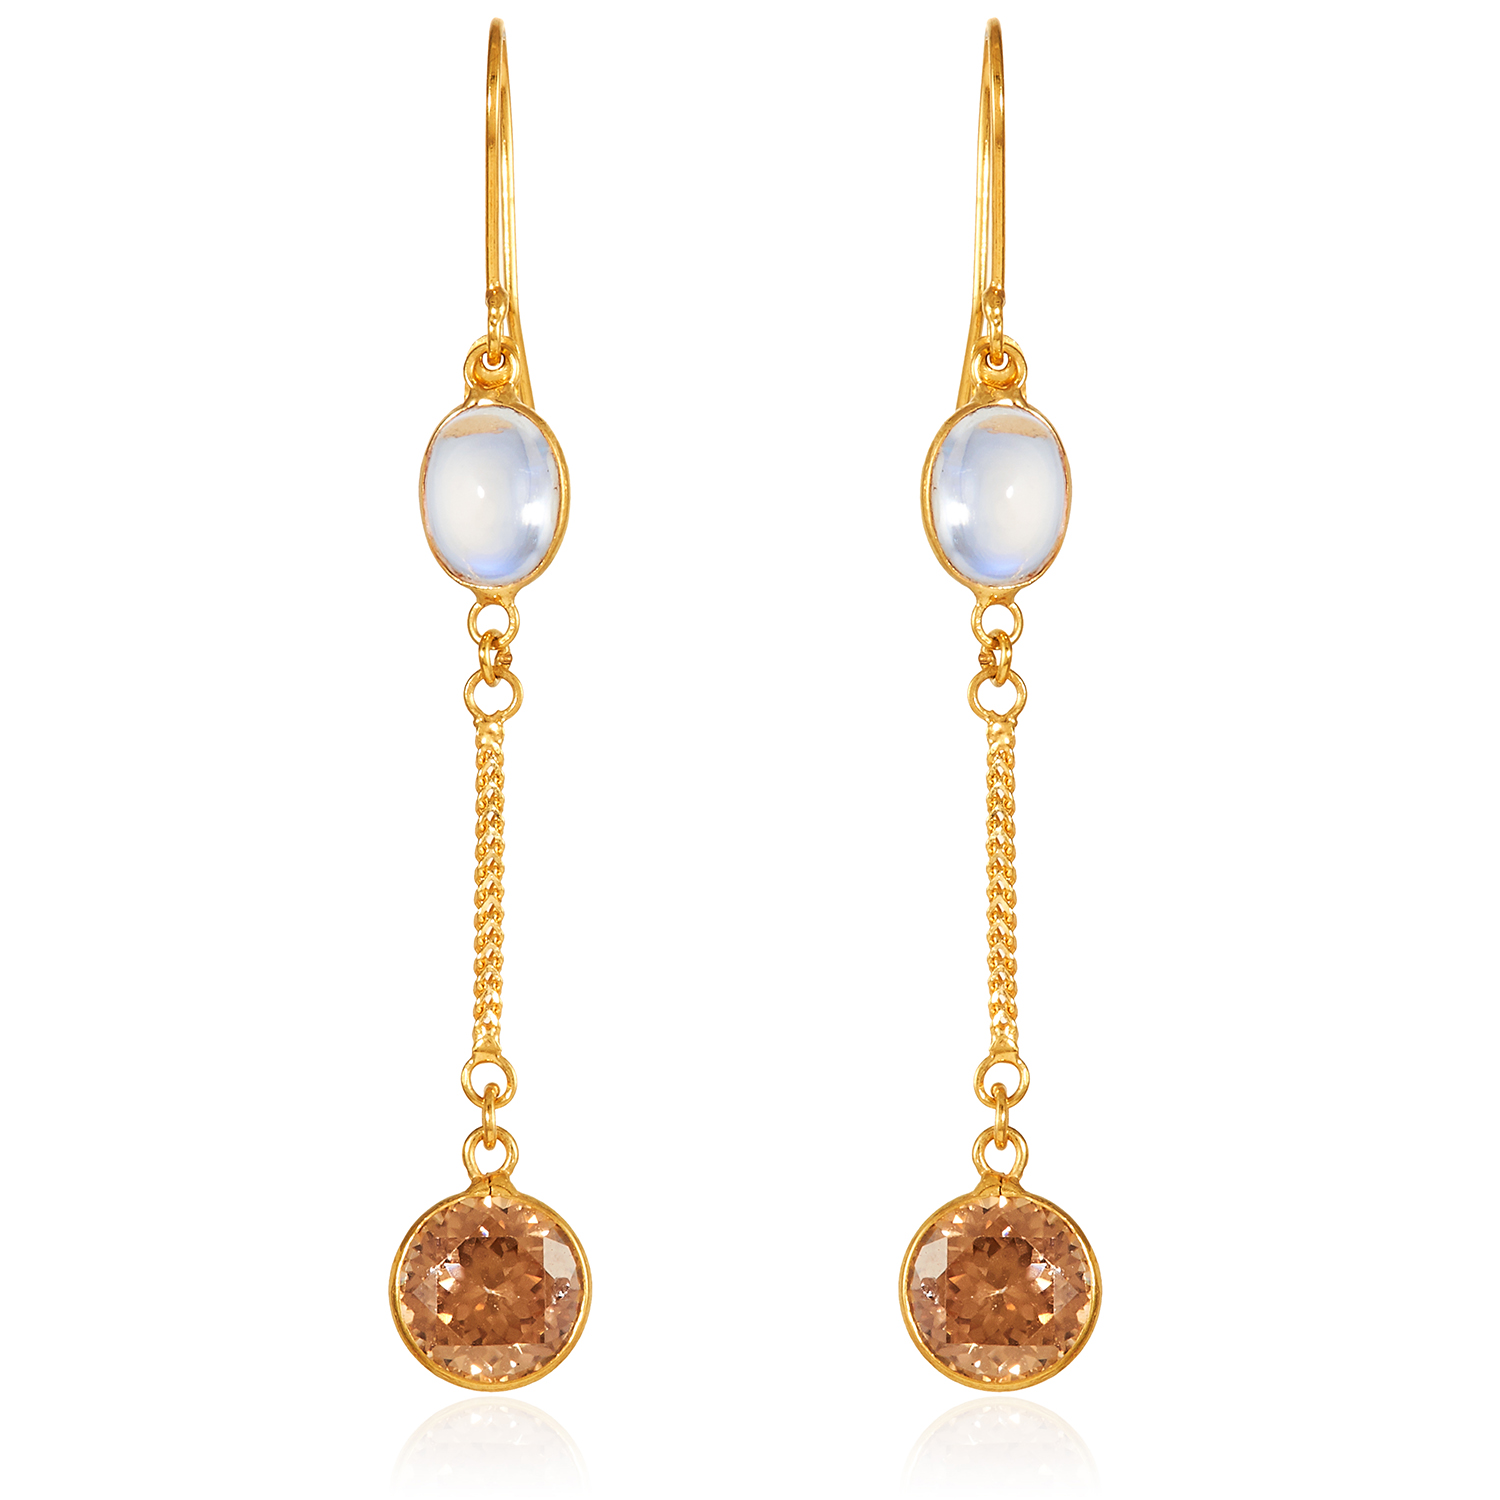 A PAIR OF MOONSTONE AND ZIRCON EARRINGS in 14ct yellow gold, set comprising of a cabochon